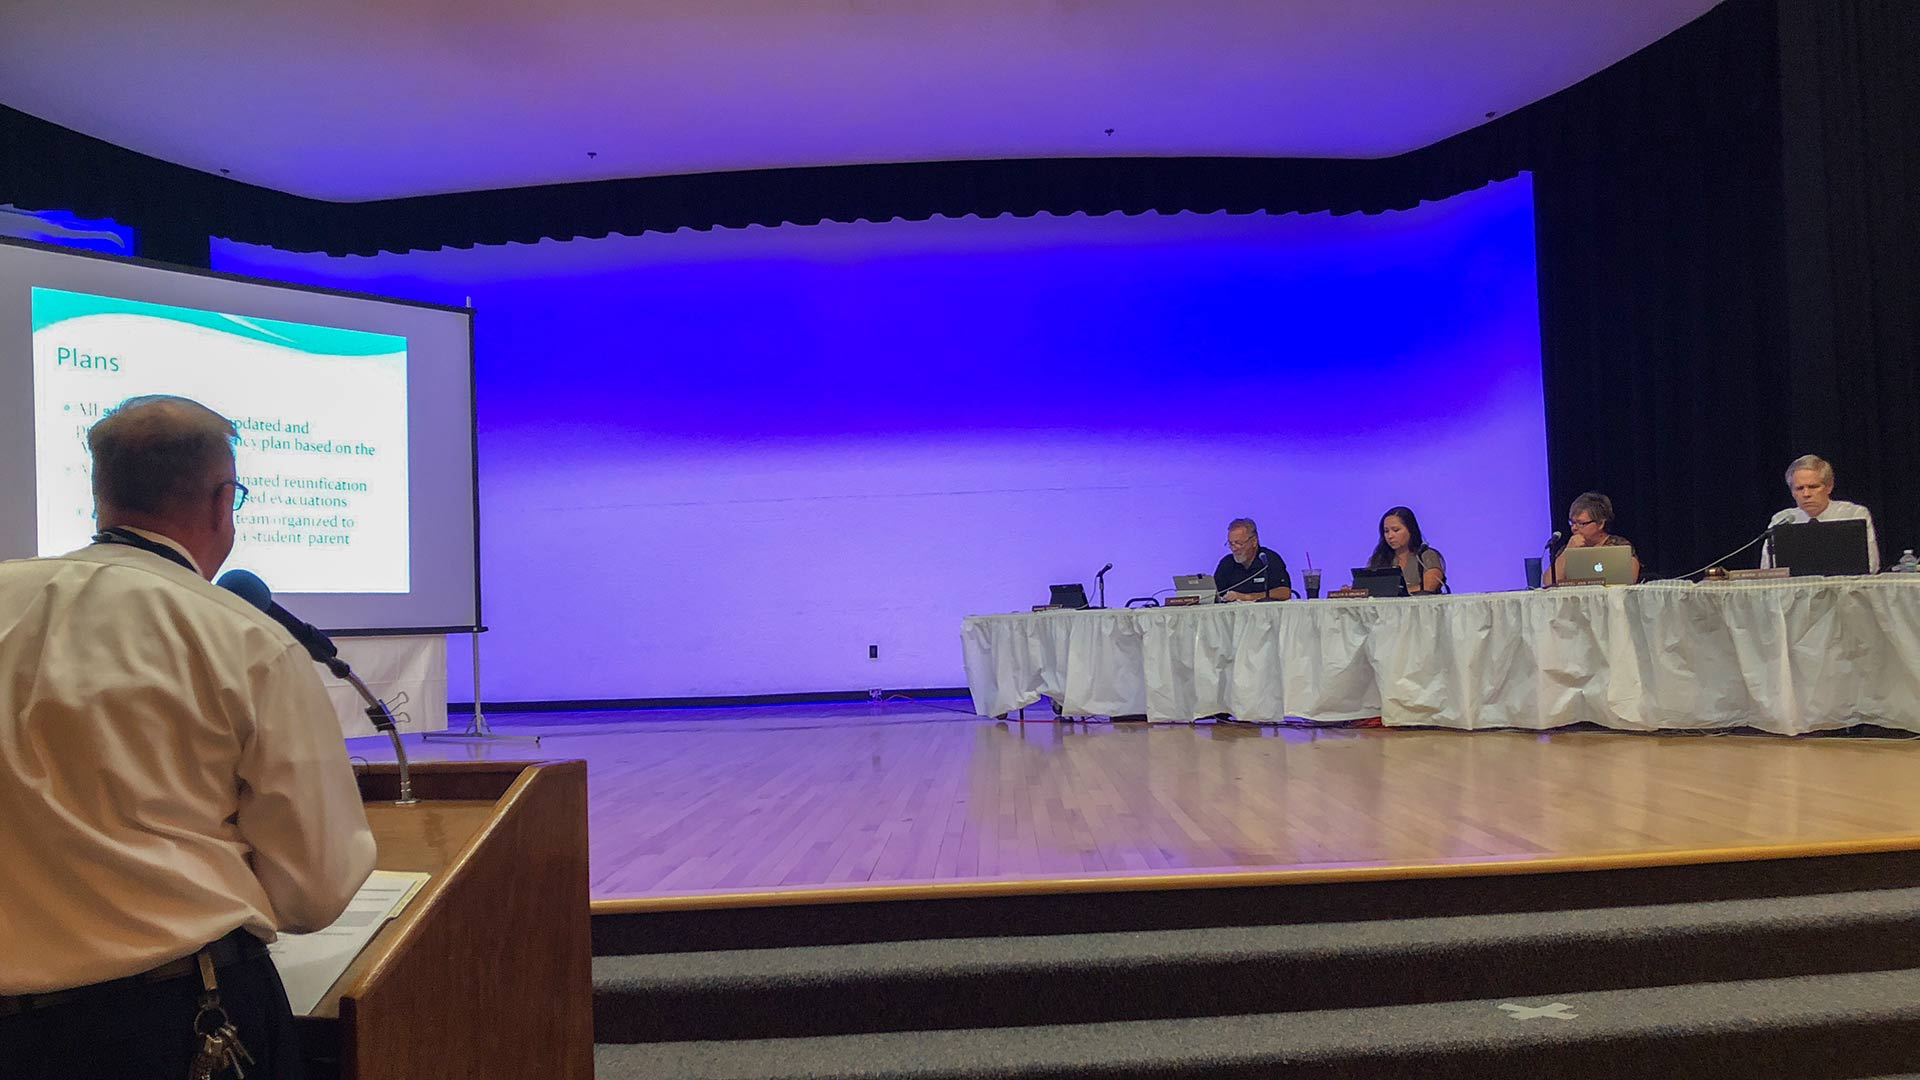 Tucson Unified School District holds town hall meeting on June 5, 2018. During the meeting, School Safety Director Jeffrey Coleman, left, presents an emergency-preparedness presentation.